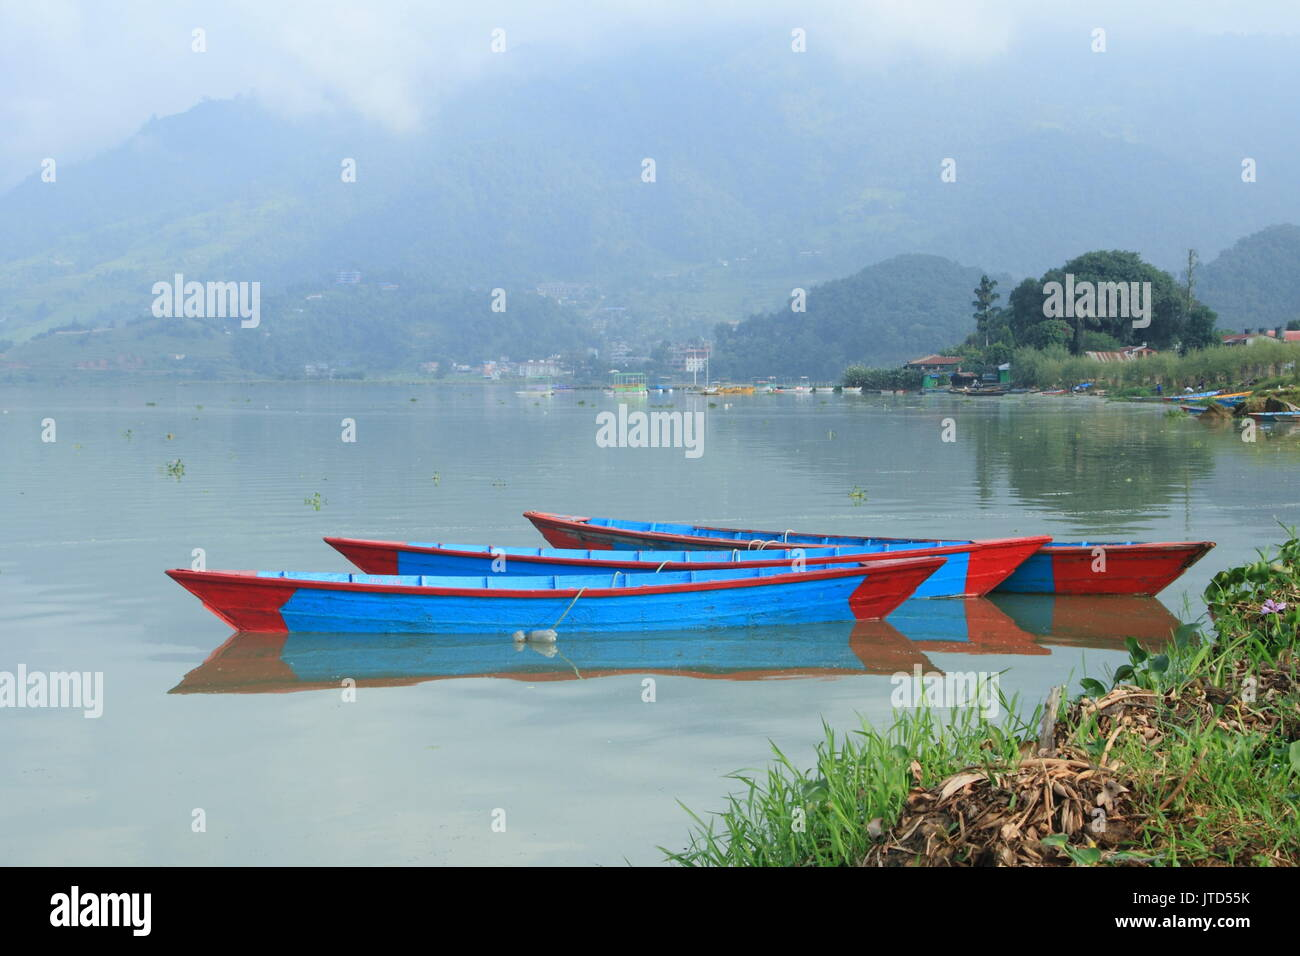 Pokhara / Nepal – September, 2015: colorful wooden boats at Phewa Lake, one of the Major tourist attractions of Nepal. - Stock Image